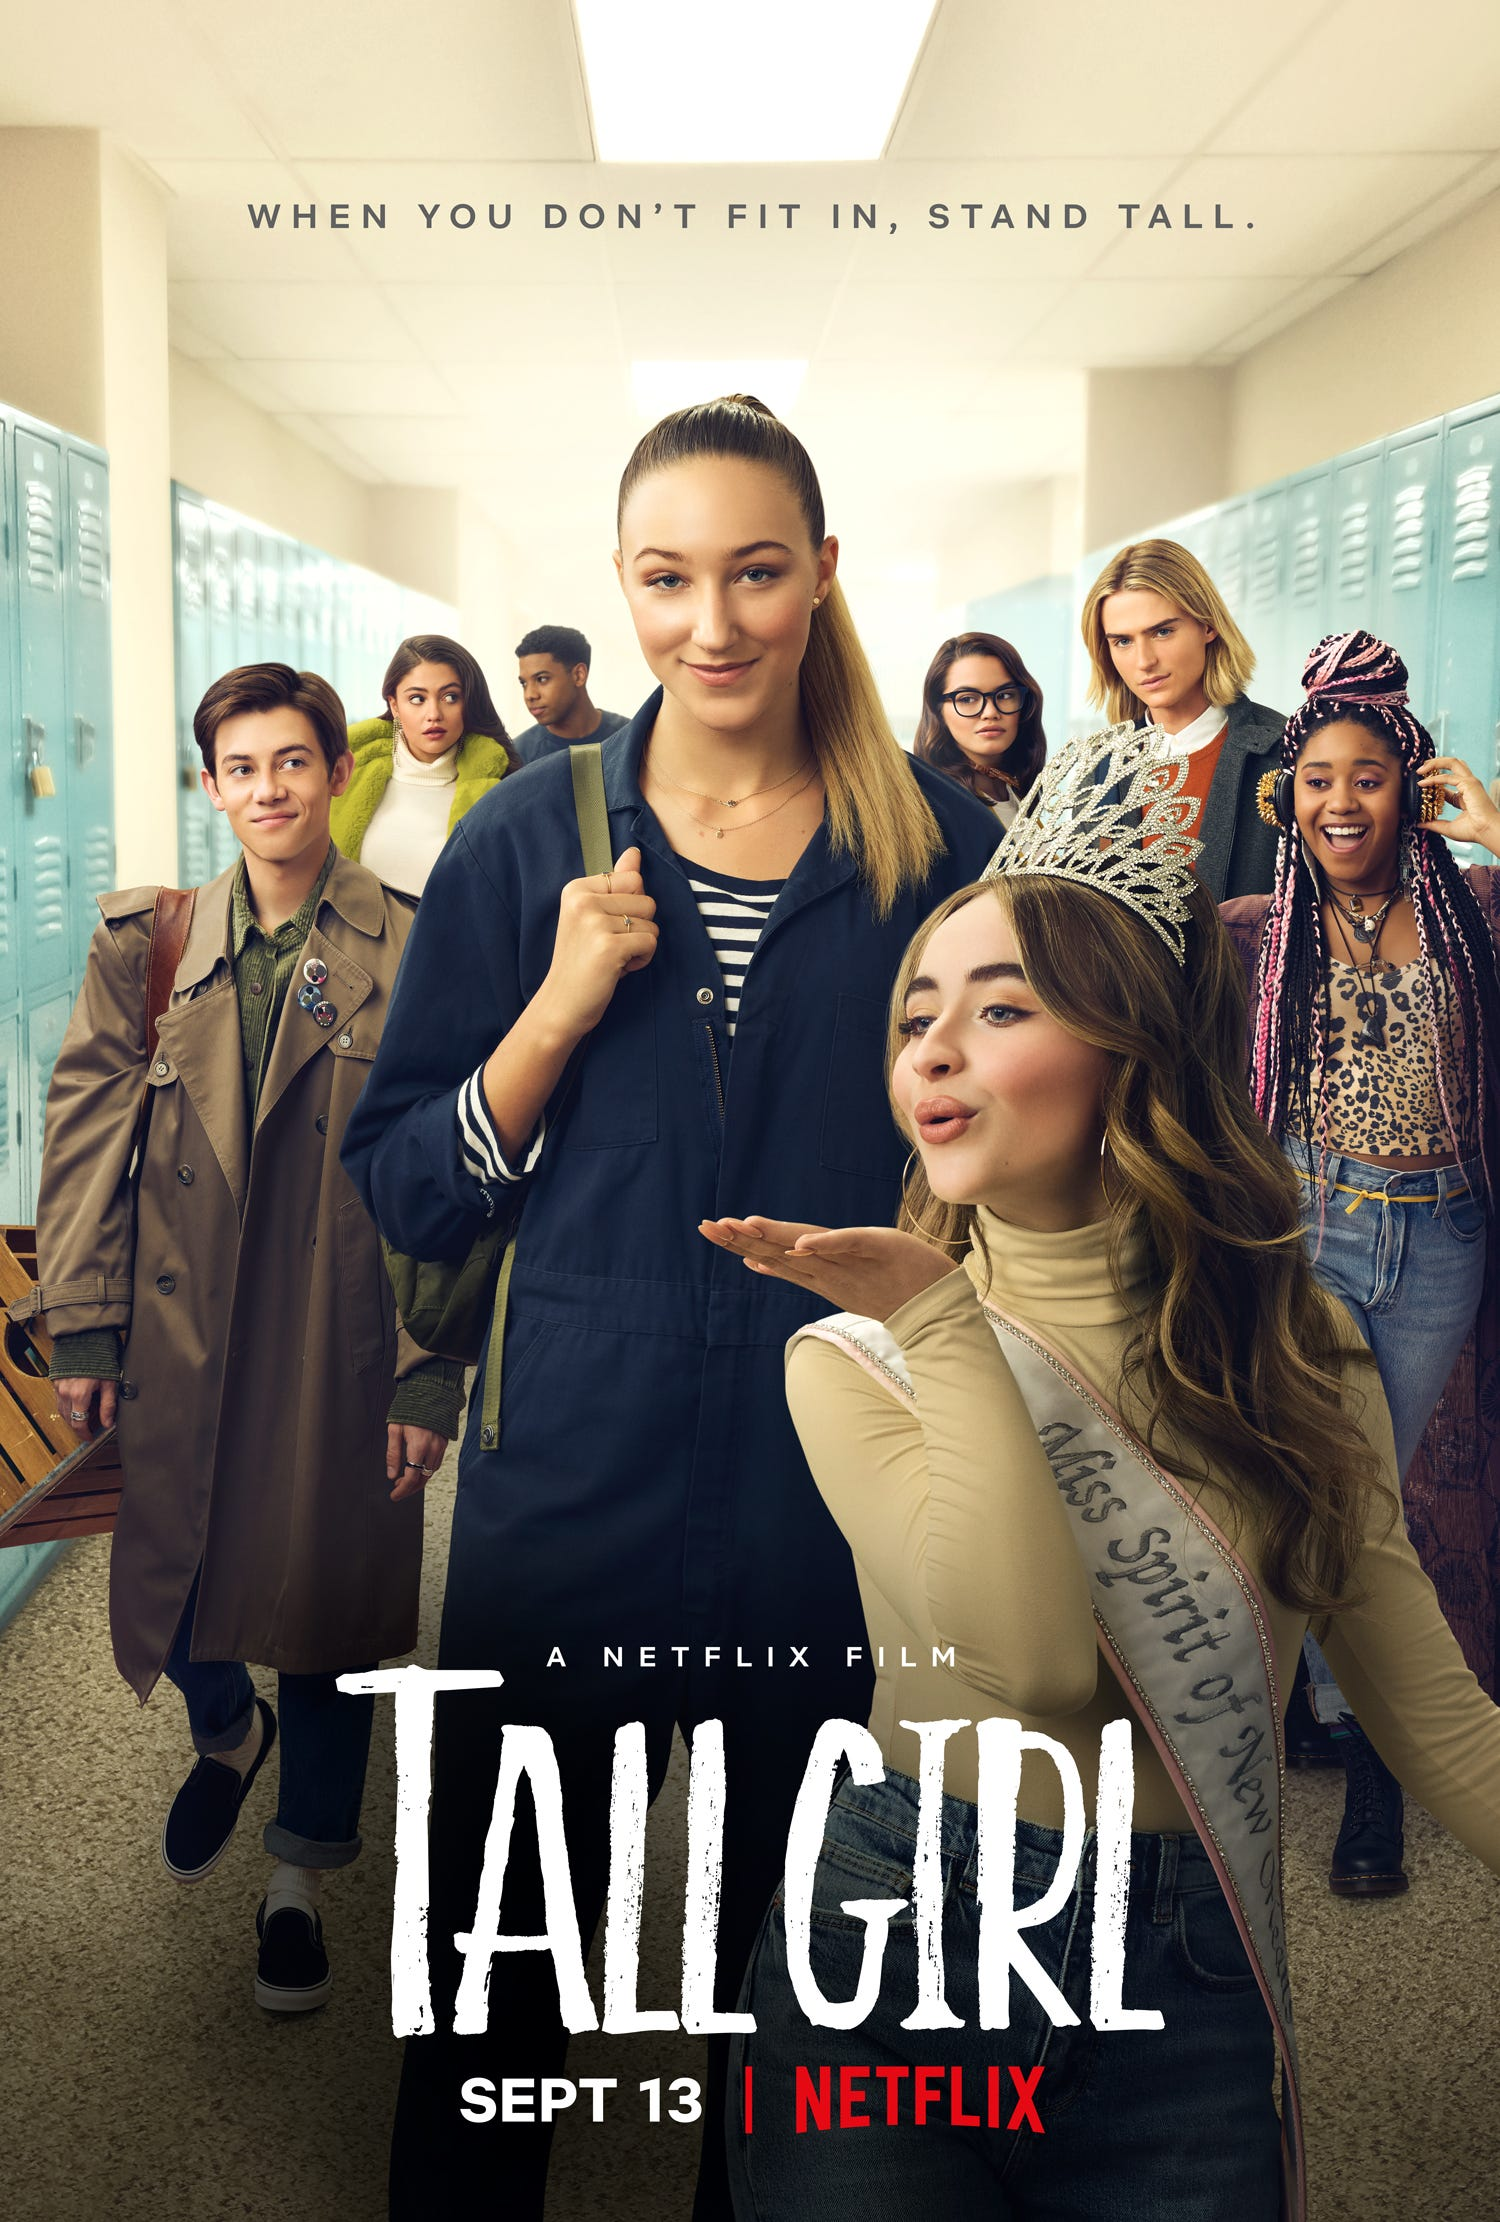 Netflix S Tall Girl What It Gets Right And Wrong About Being Tall